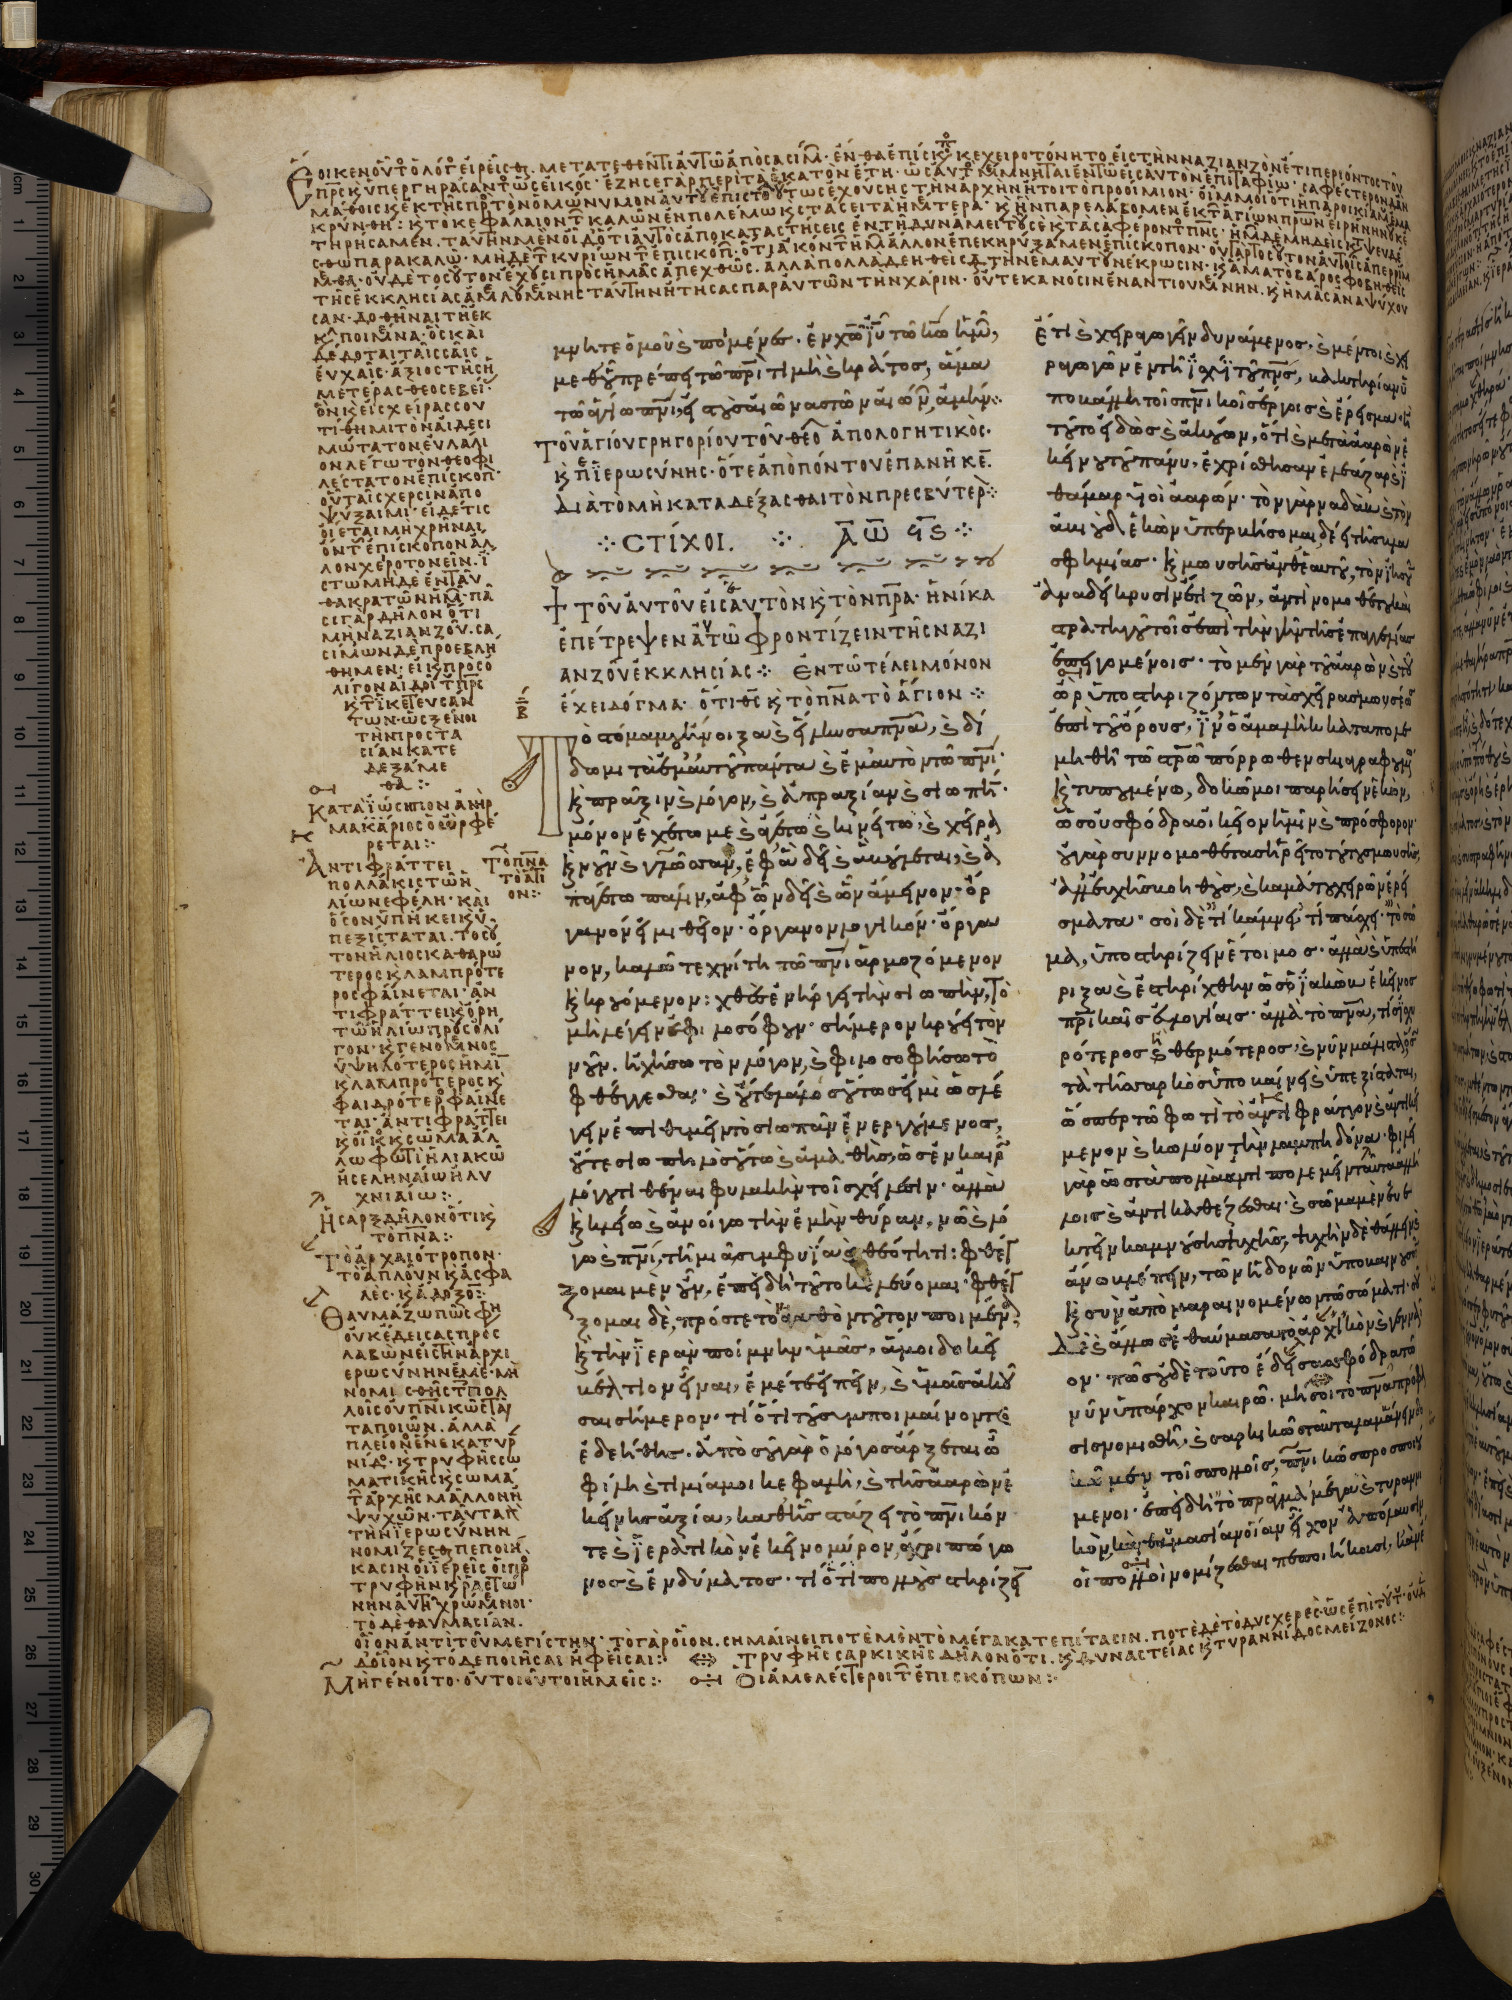 Sermons of Gregory of Nazianzus (Add MS 18231 f105v)